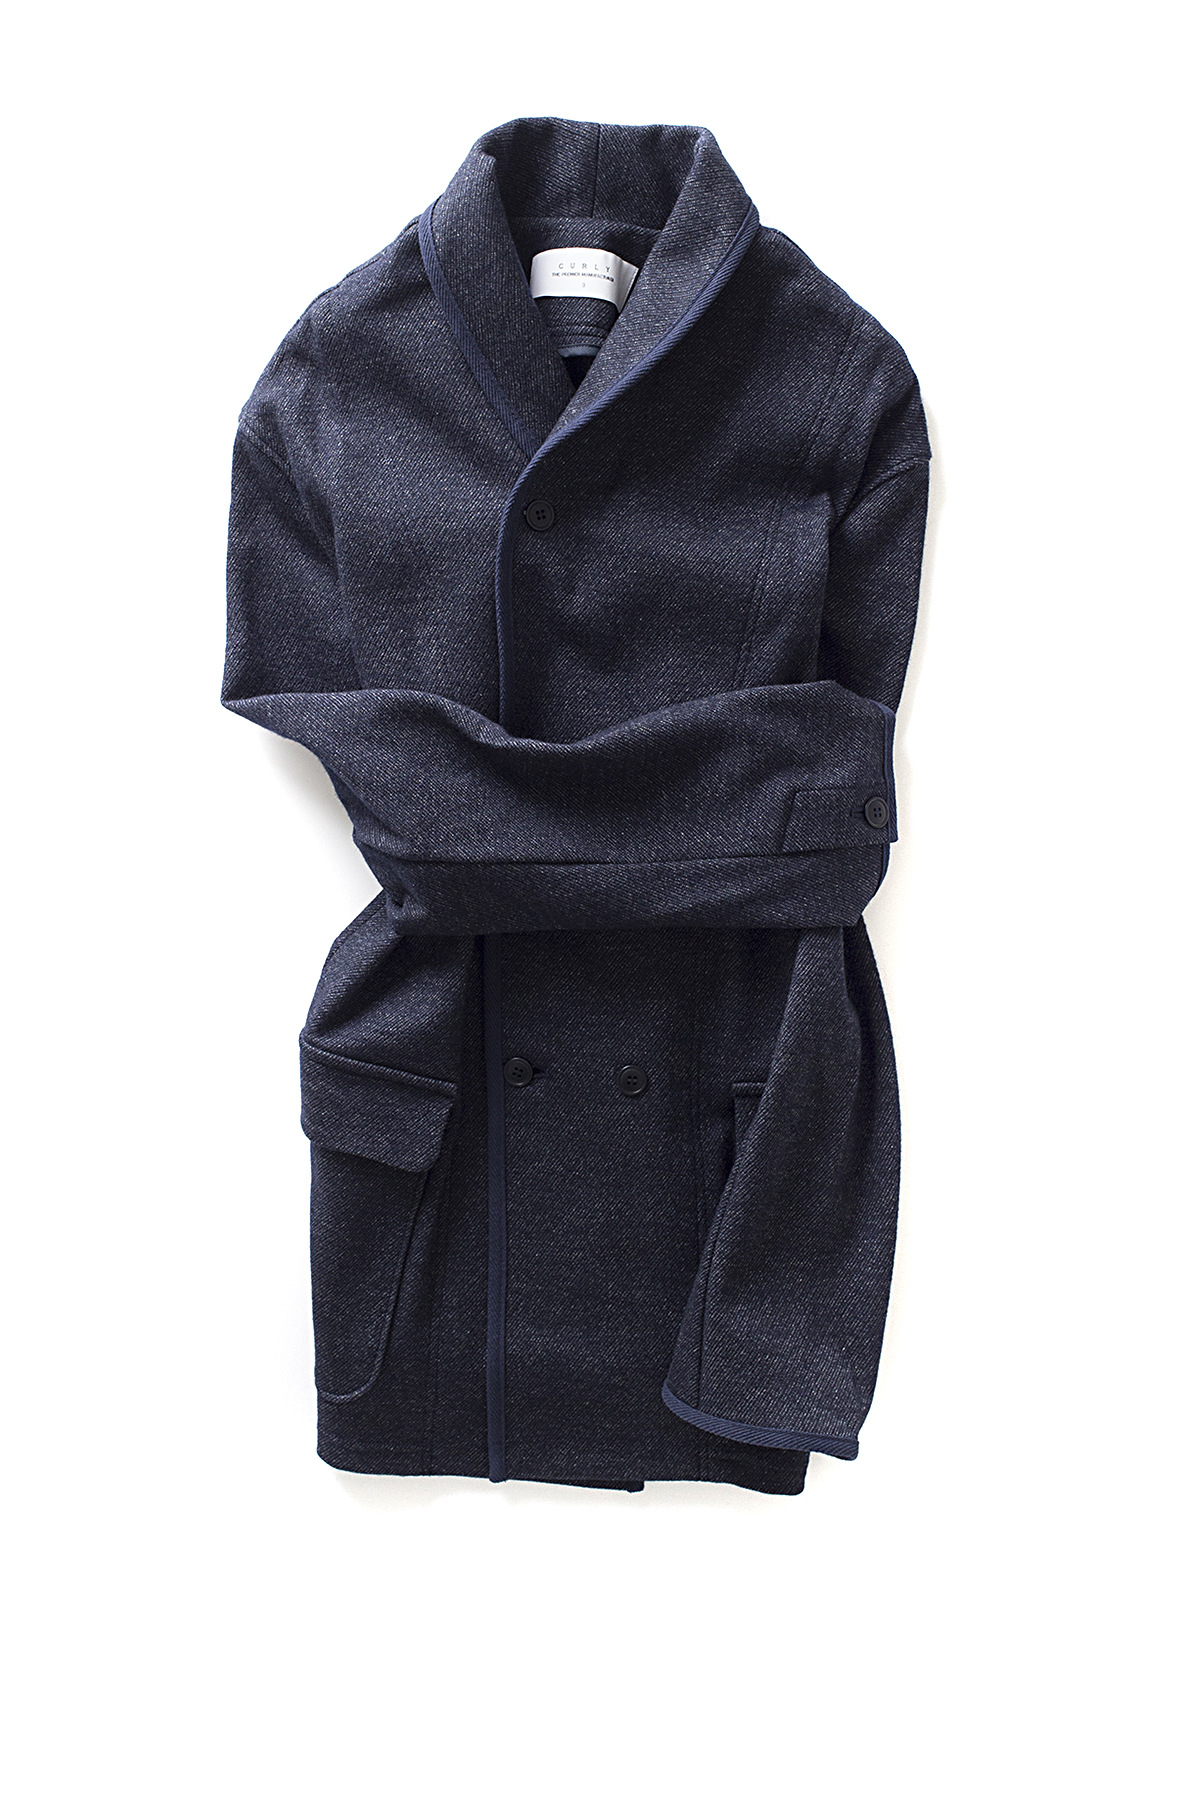 Curly : Split Shawl Jacket (Navy)